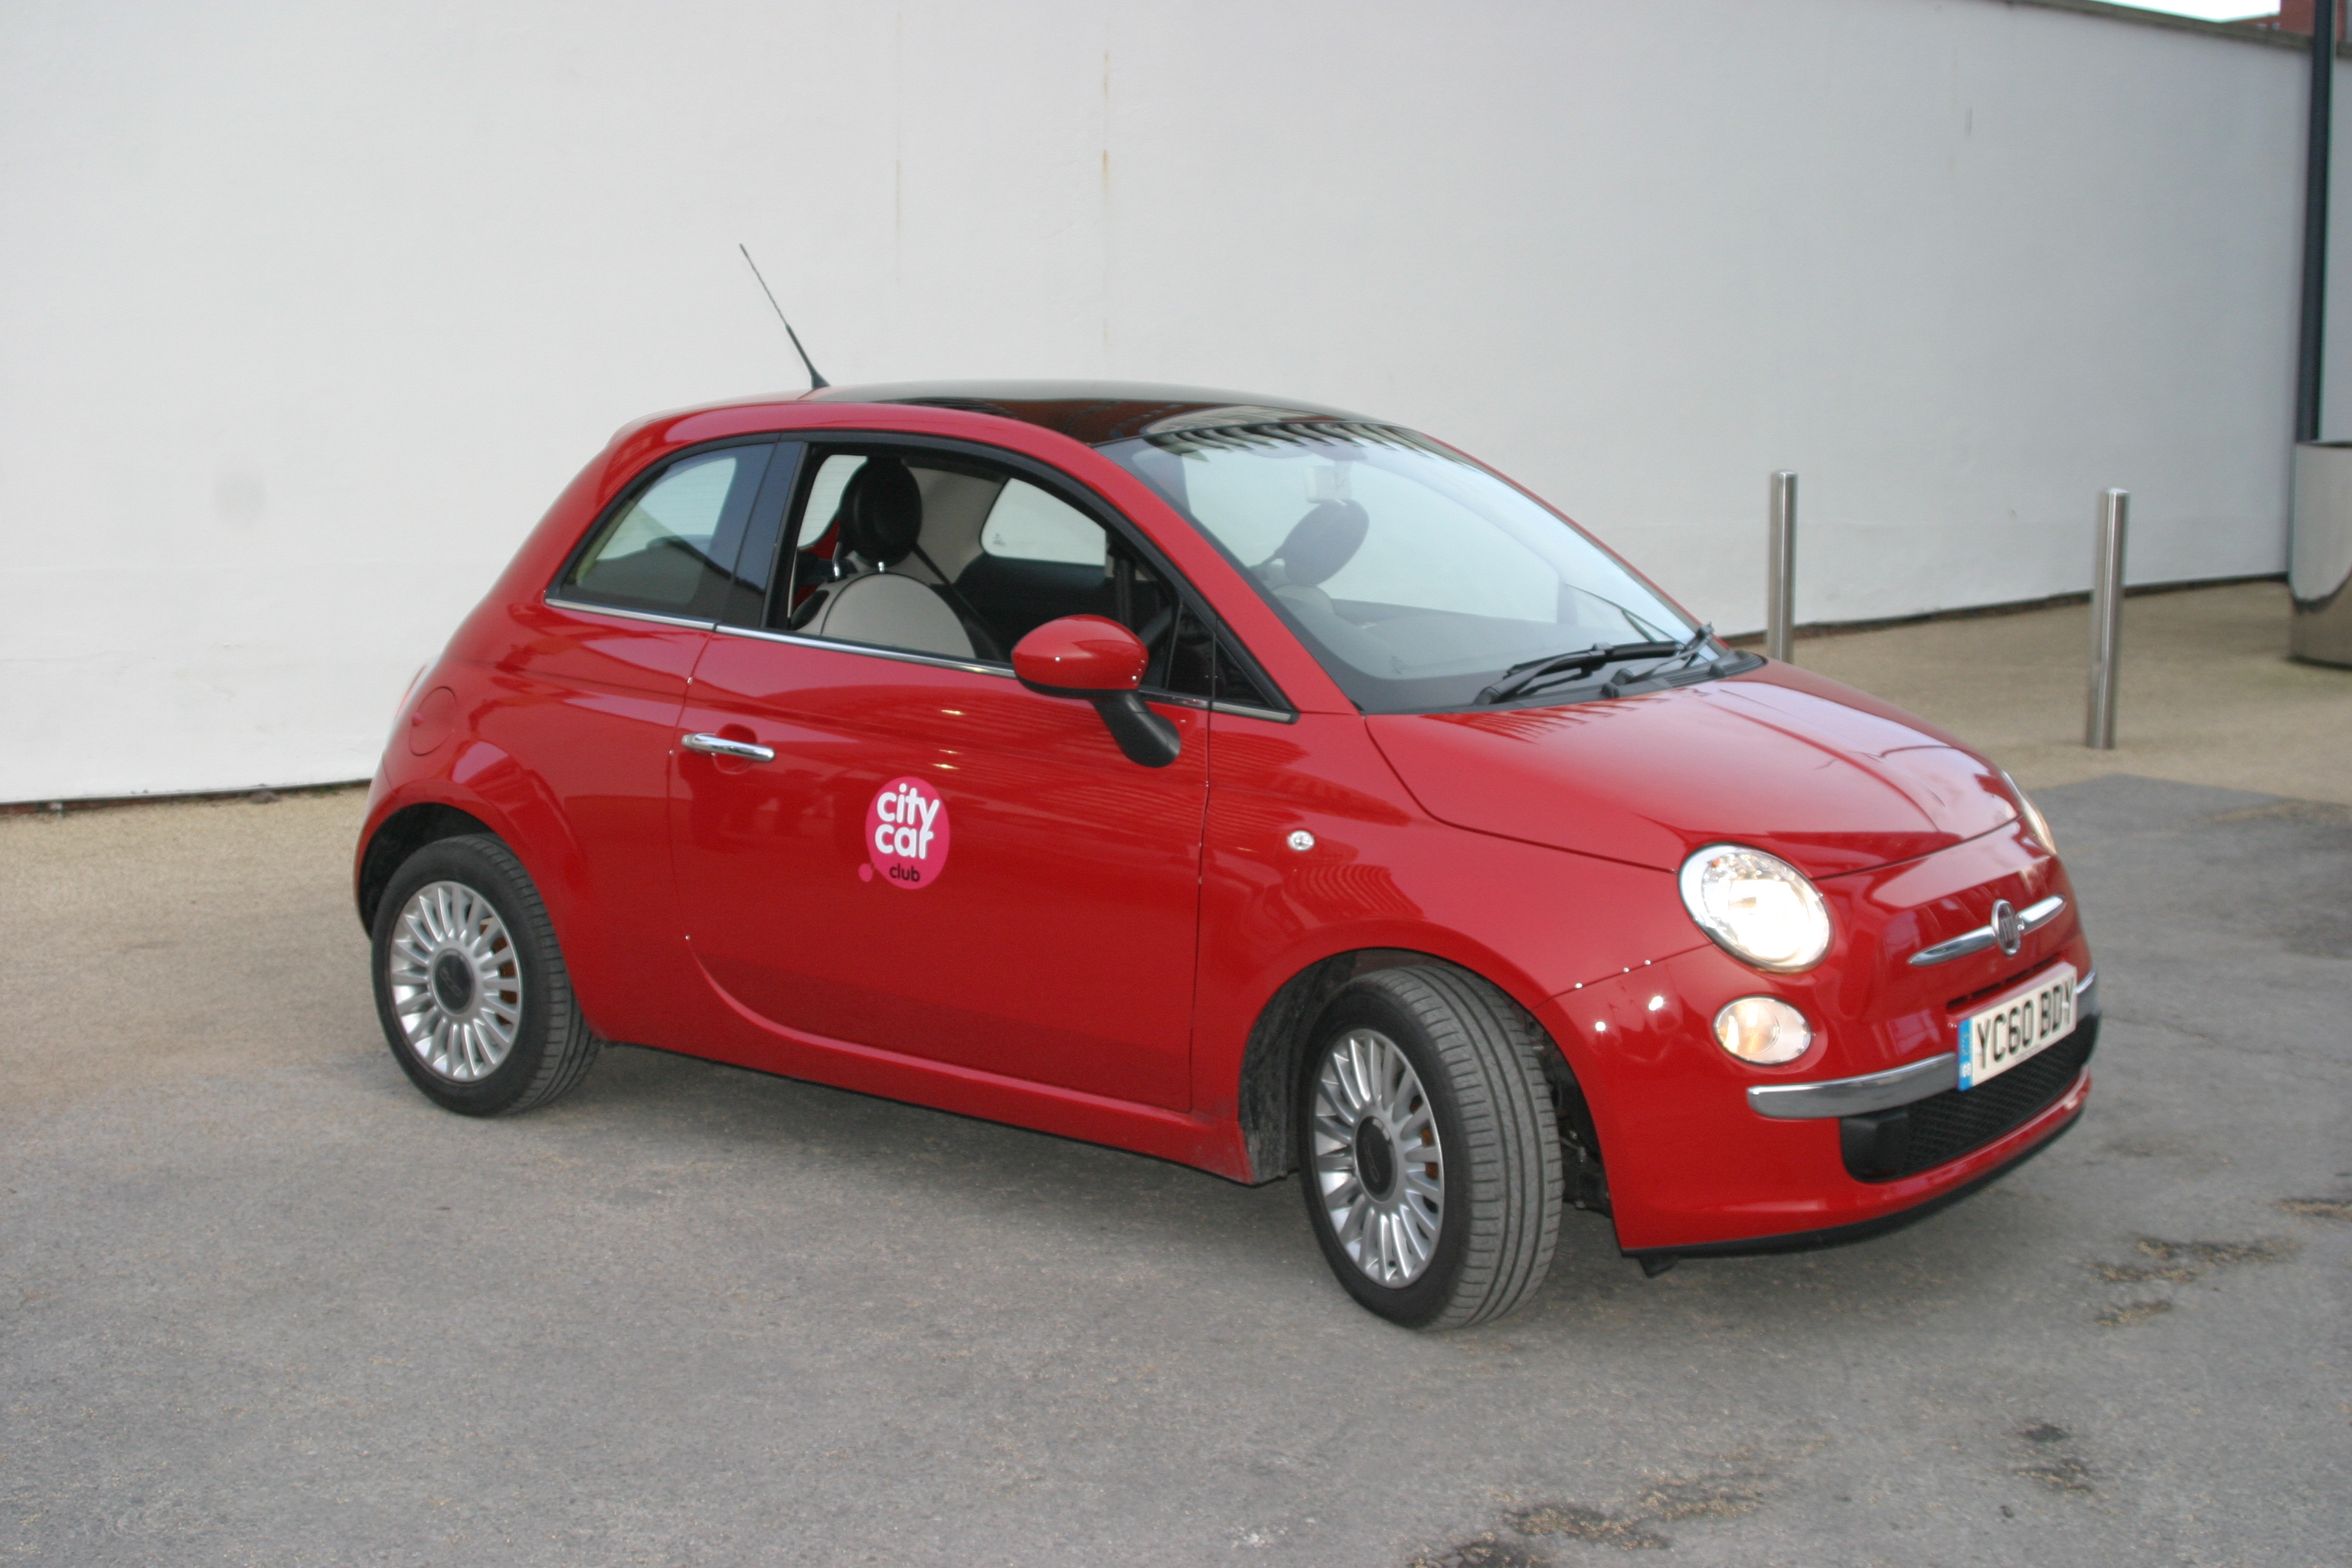 File:City Car Club Fiat 500.jpeg  Wikipedia, the free encyclopedia